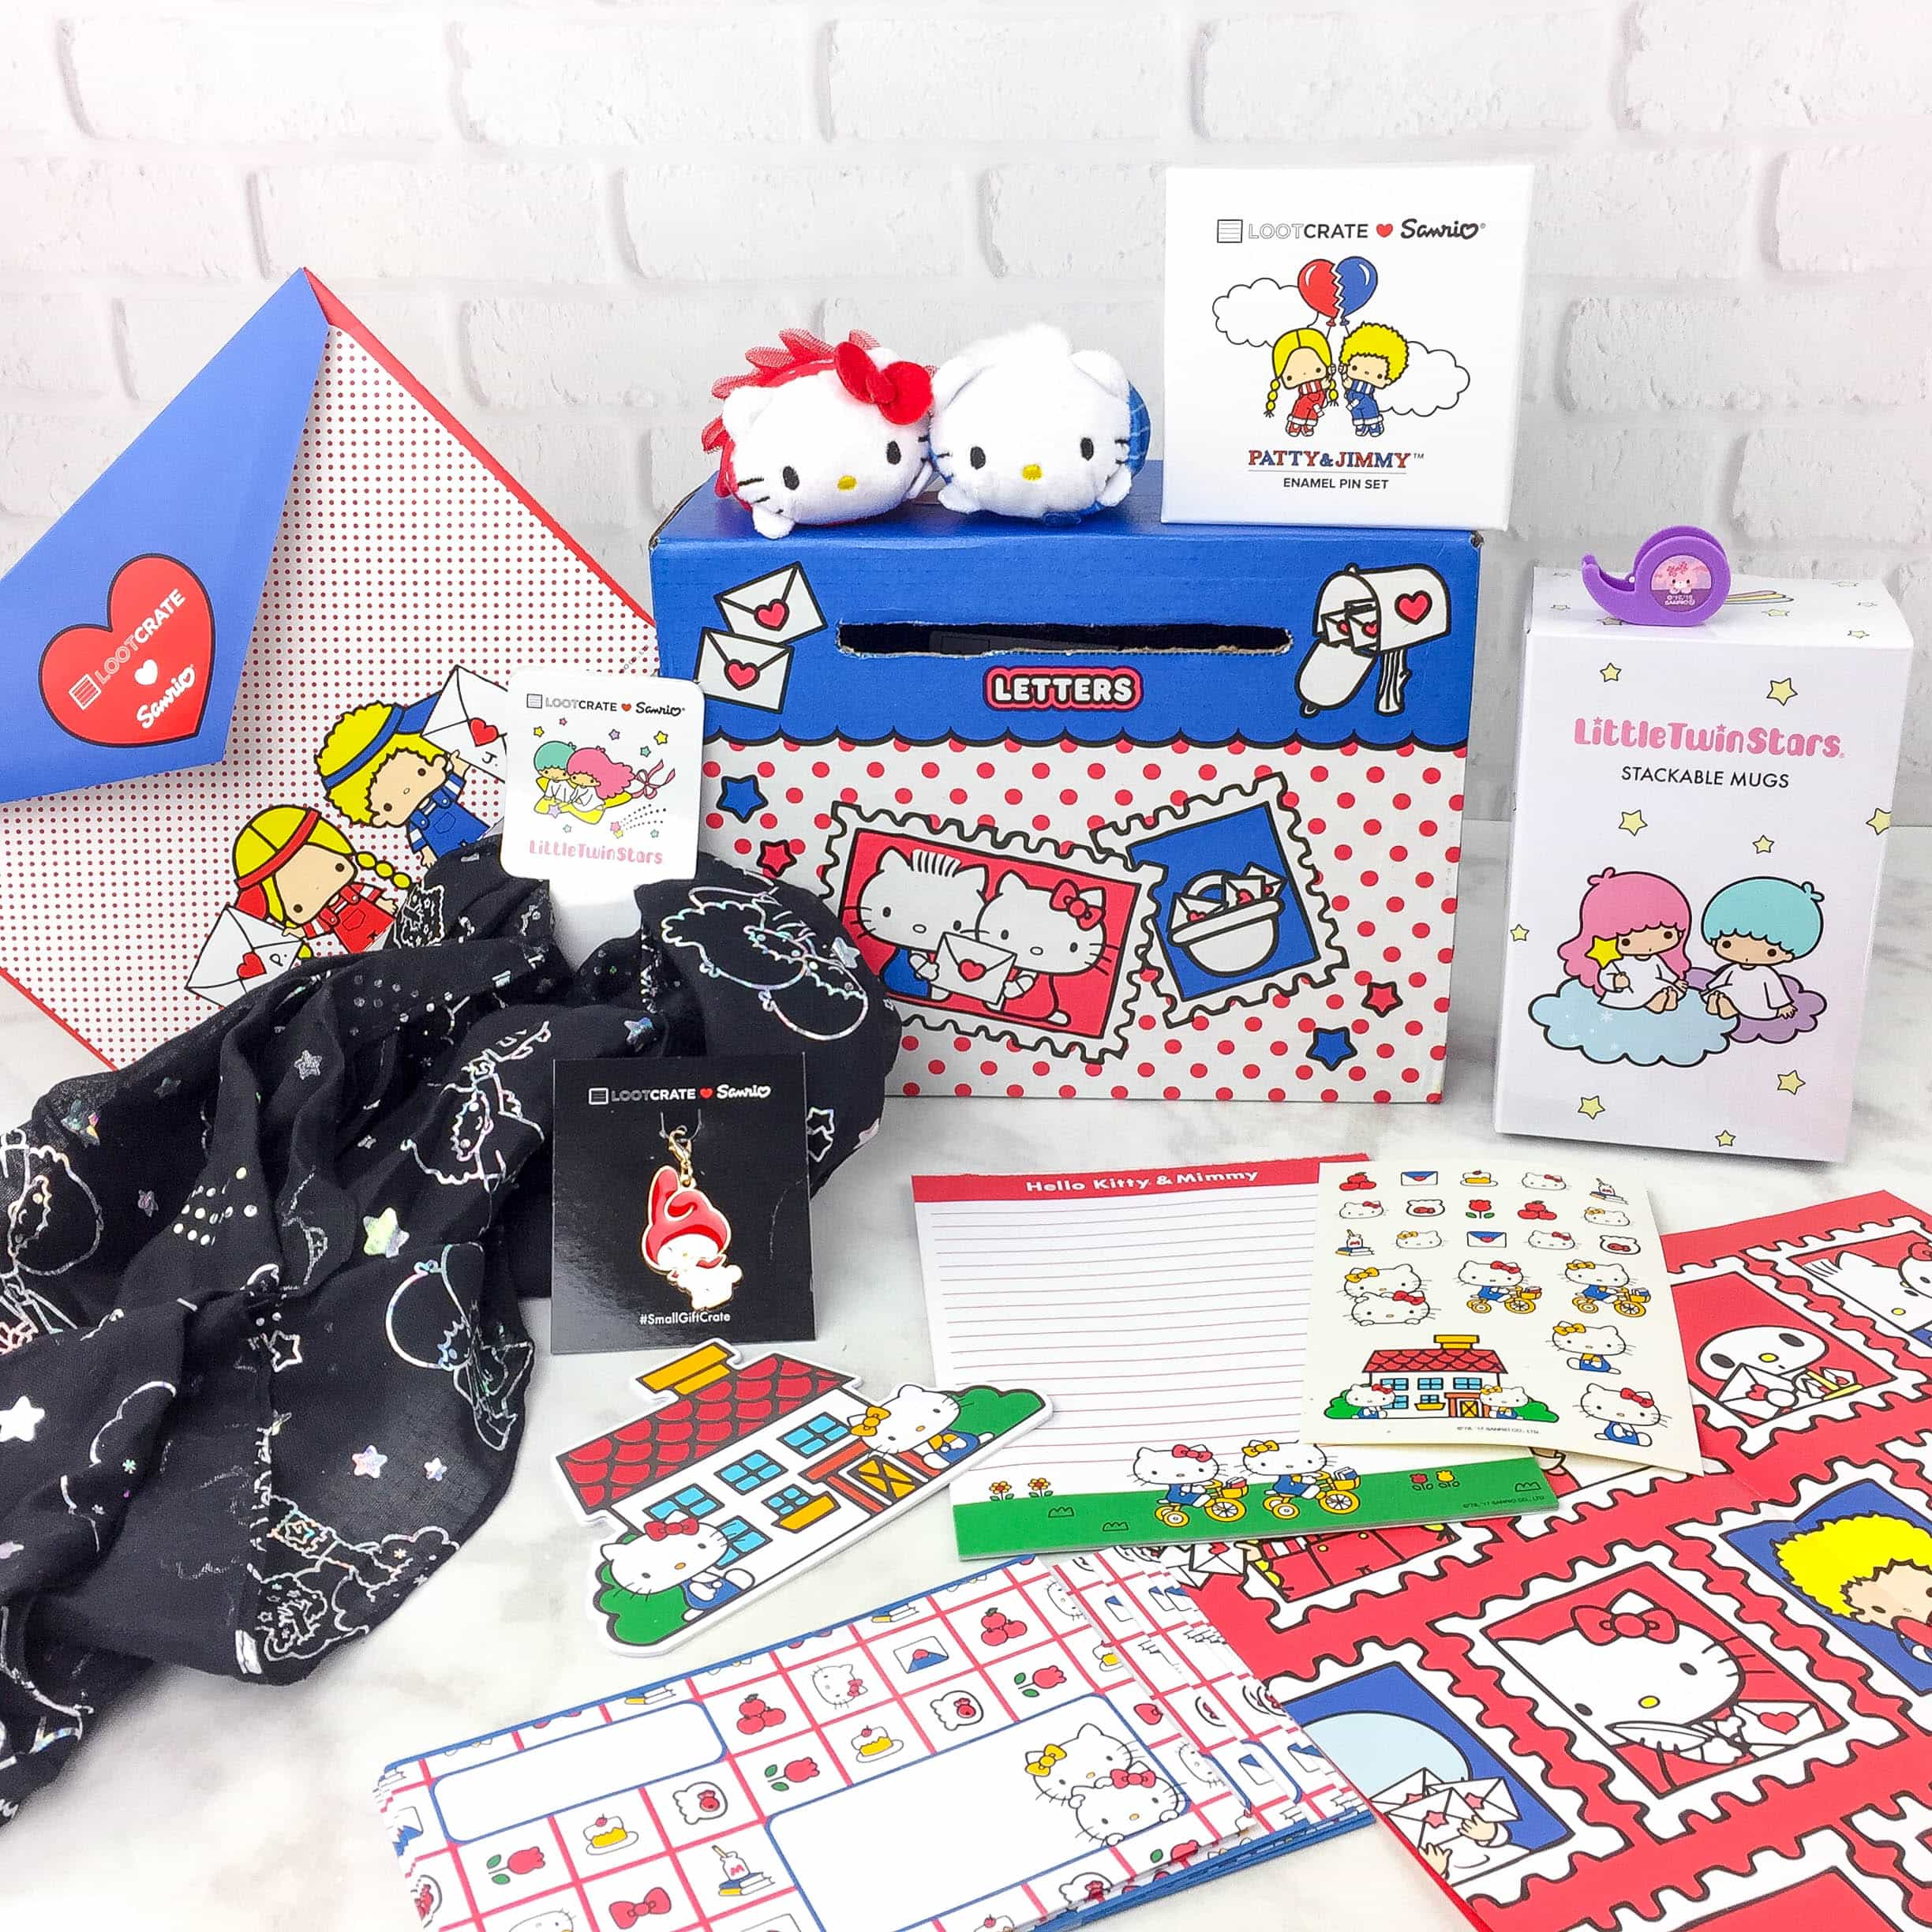 Sanrio Small Gift Crate Spring 2017 Subscription Box Review ...